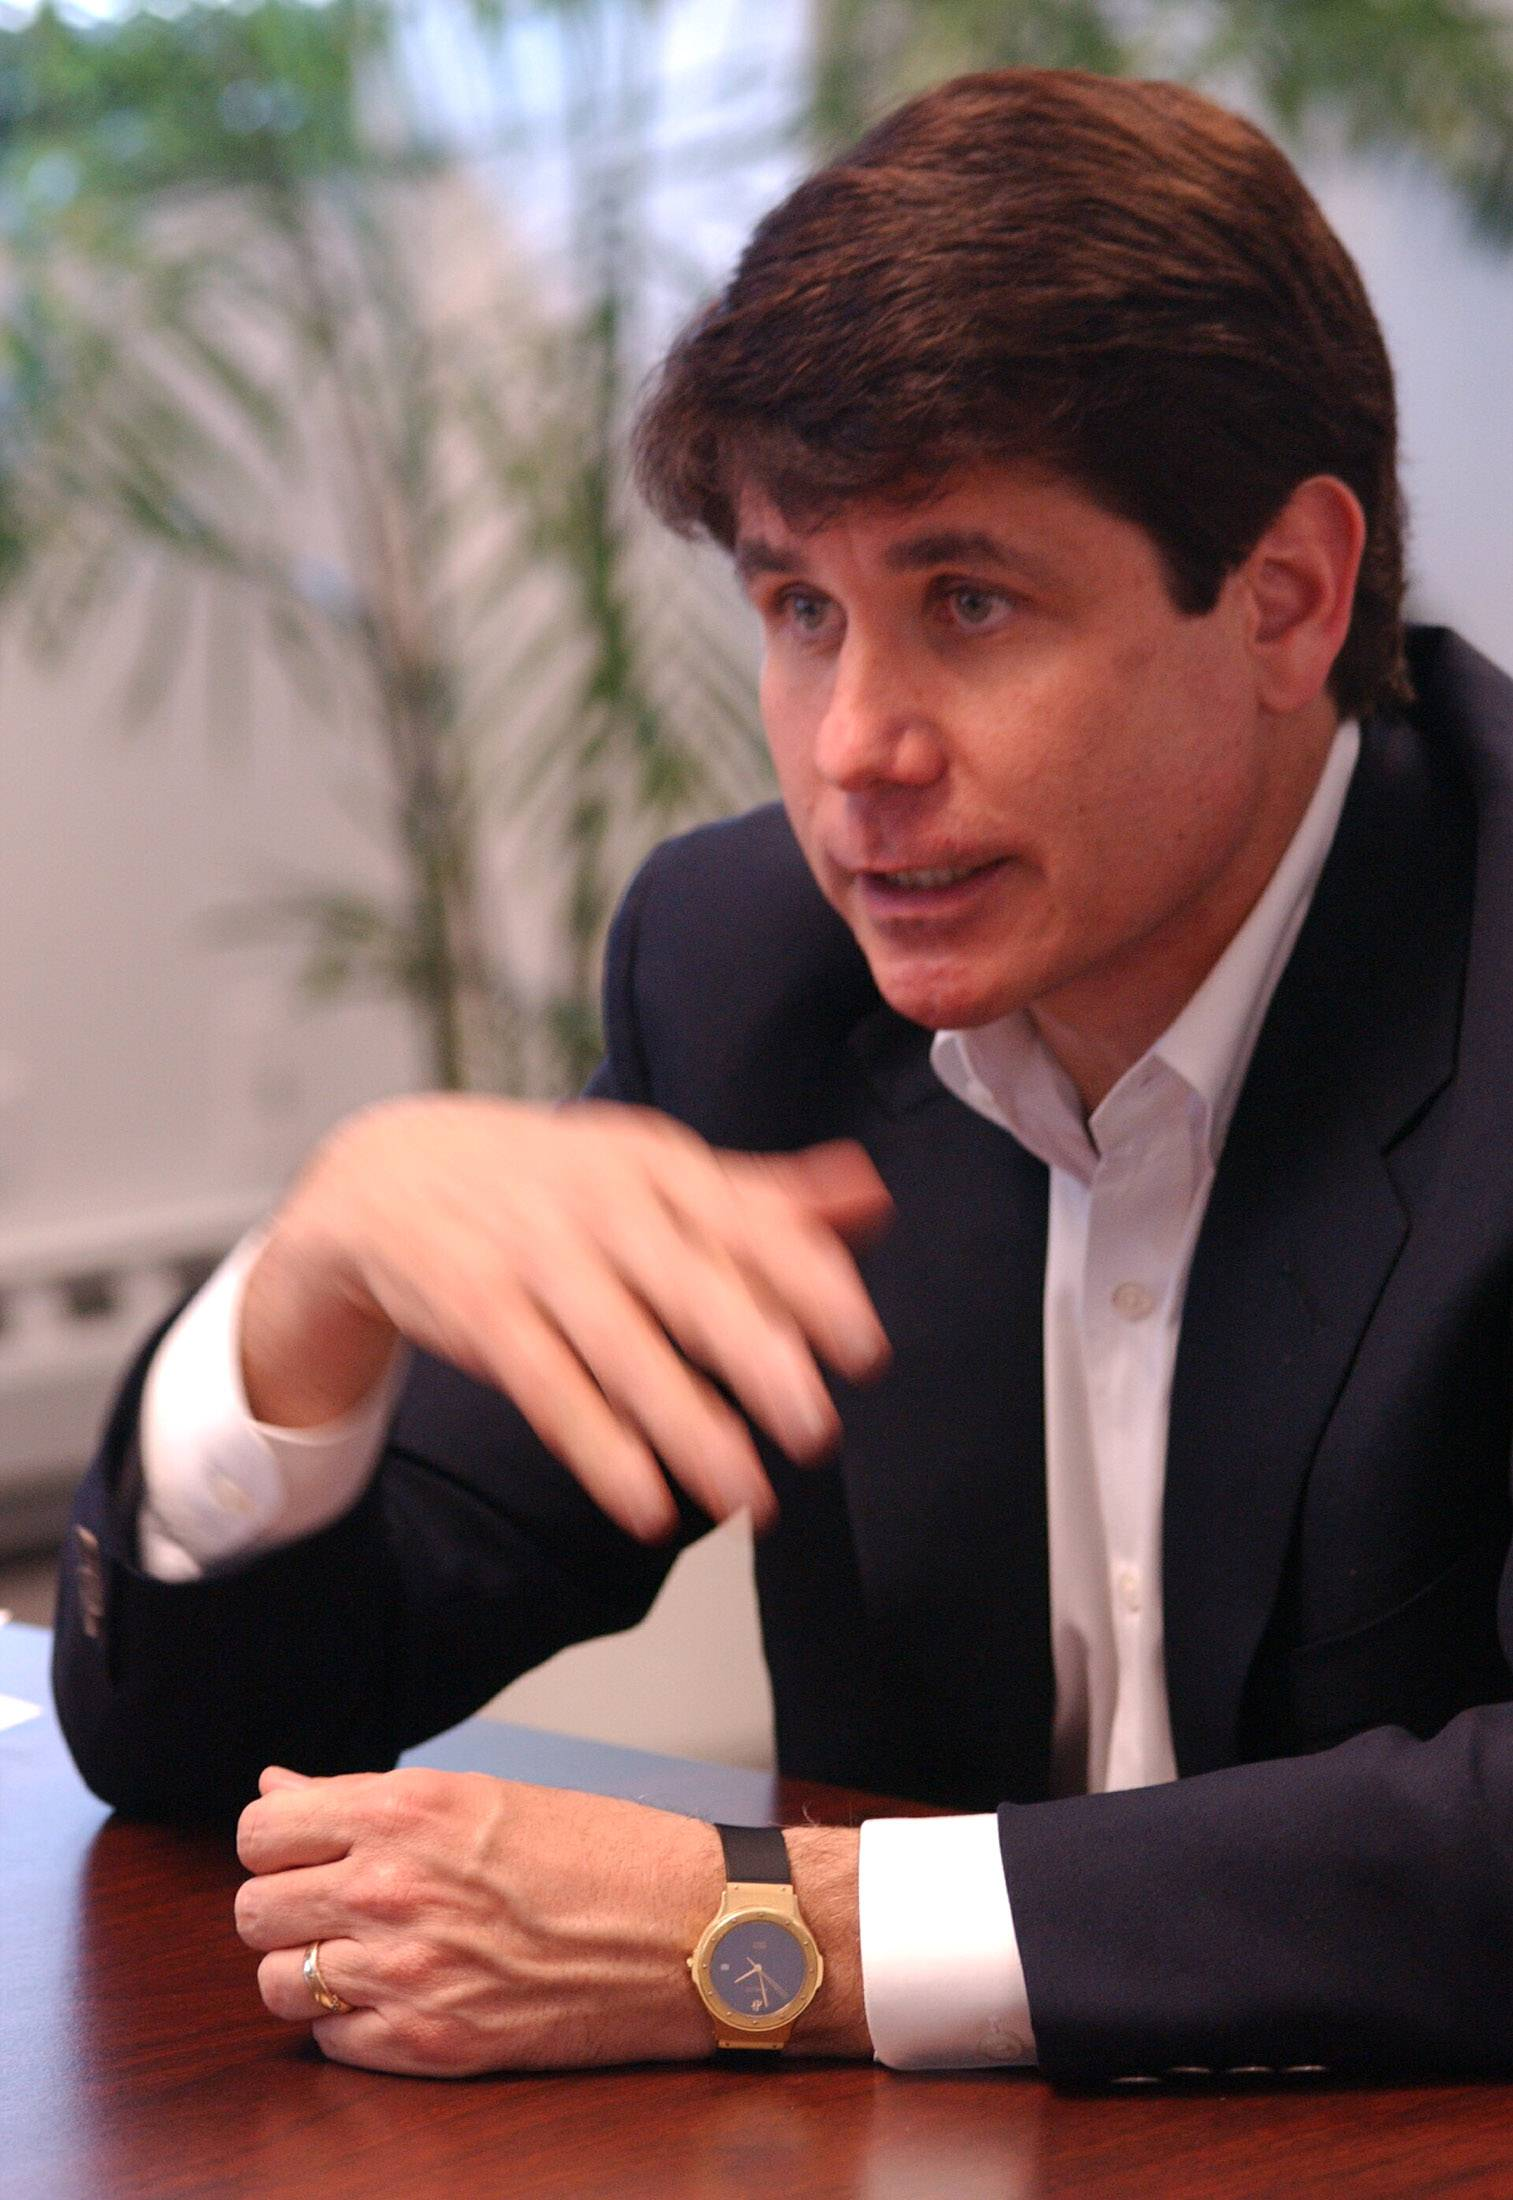 Former Gov. Rod Blagojevich sought a $100,000 campaign donation from racetrack executive John Johnston before he signed an extension of a state gambling law in 2008. Johnston never paid the $100,000 and has denied agreeing to pay it.